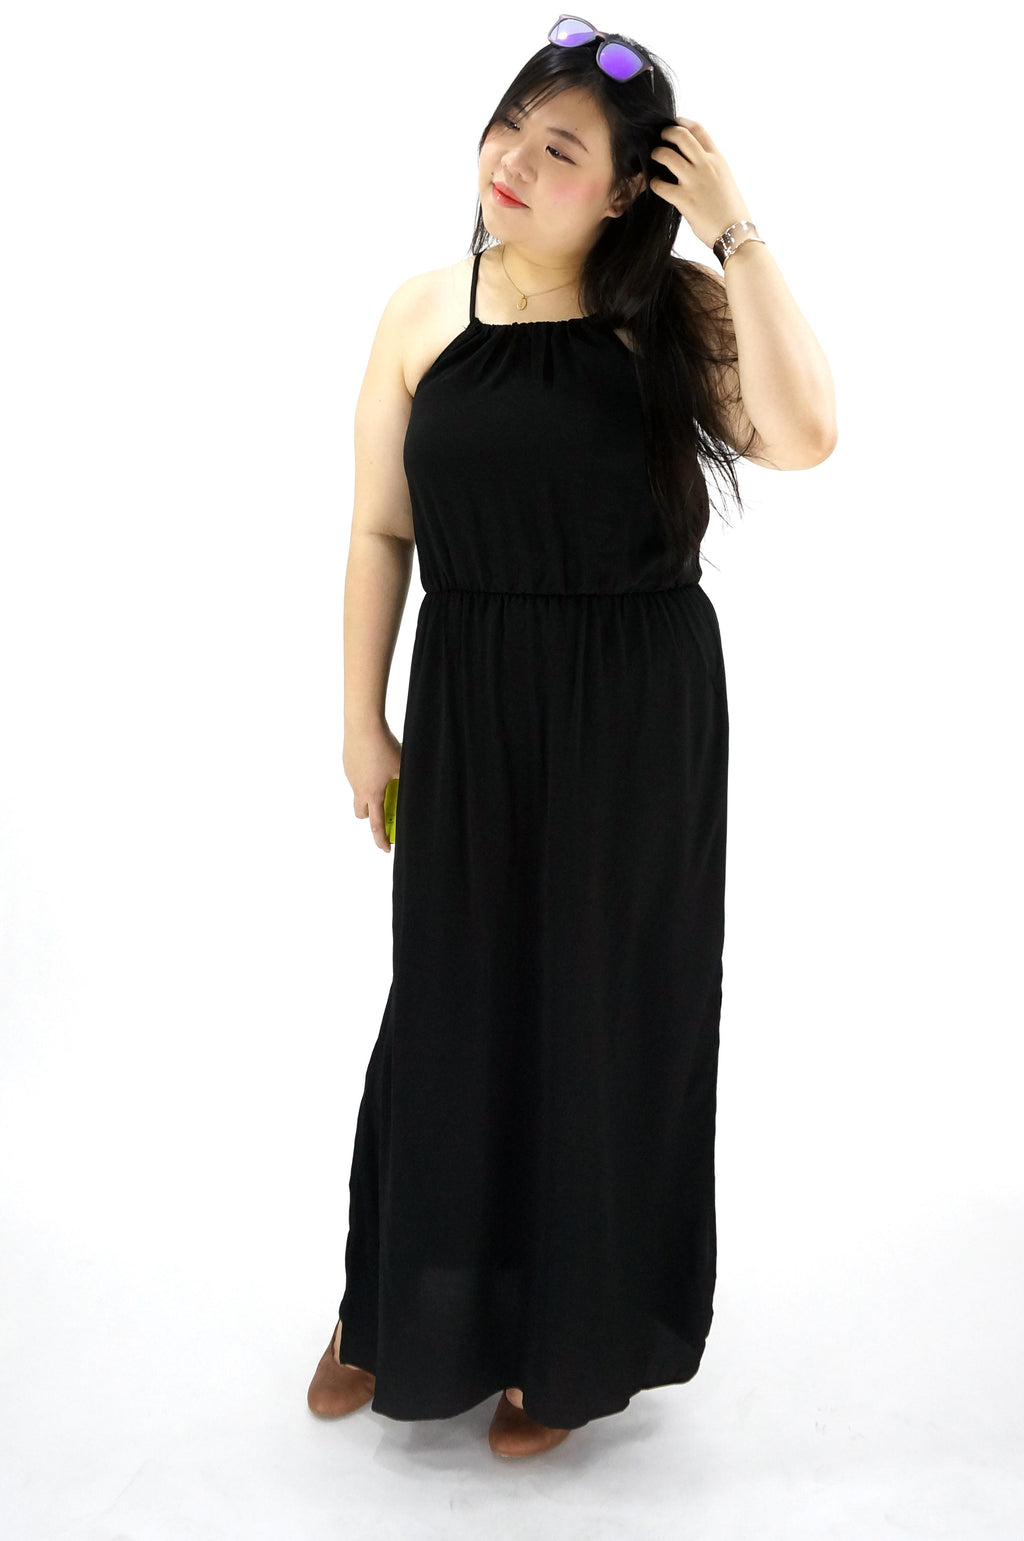 Scoop Neck Spaghetti Strap Long Dress